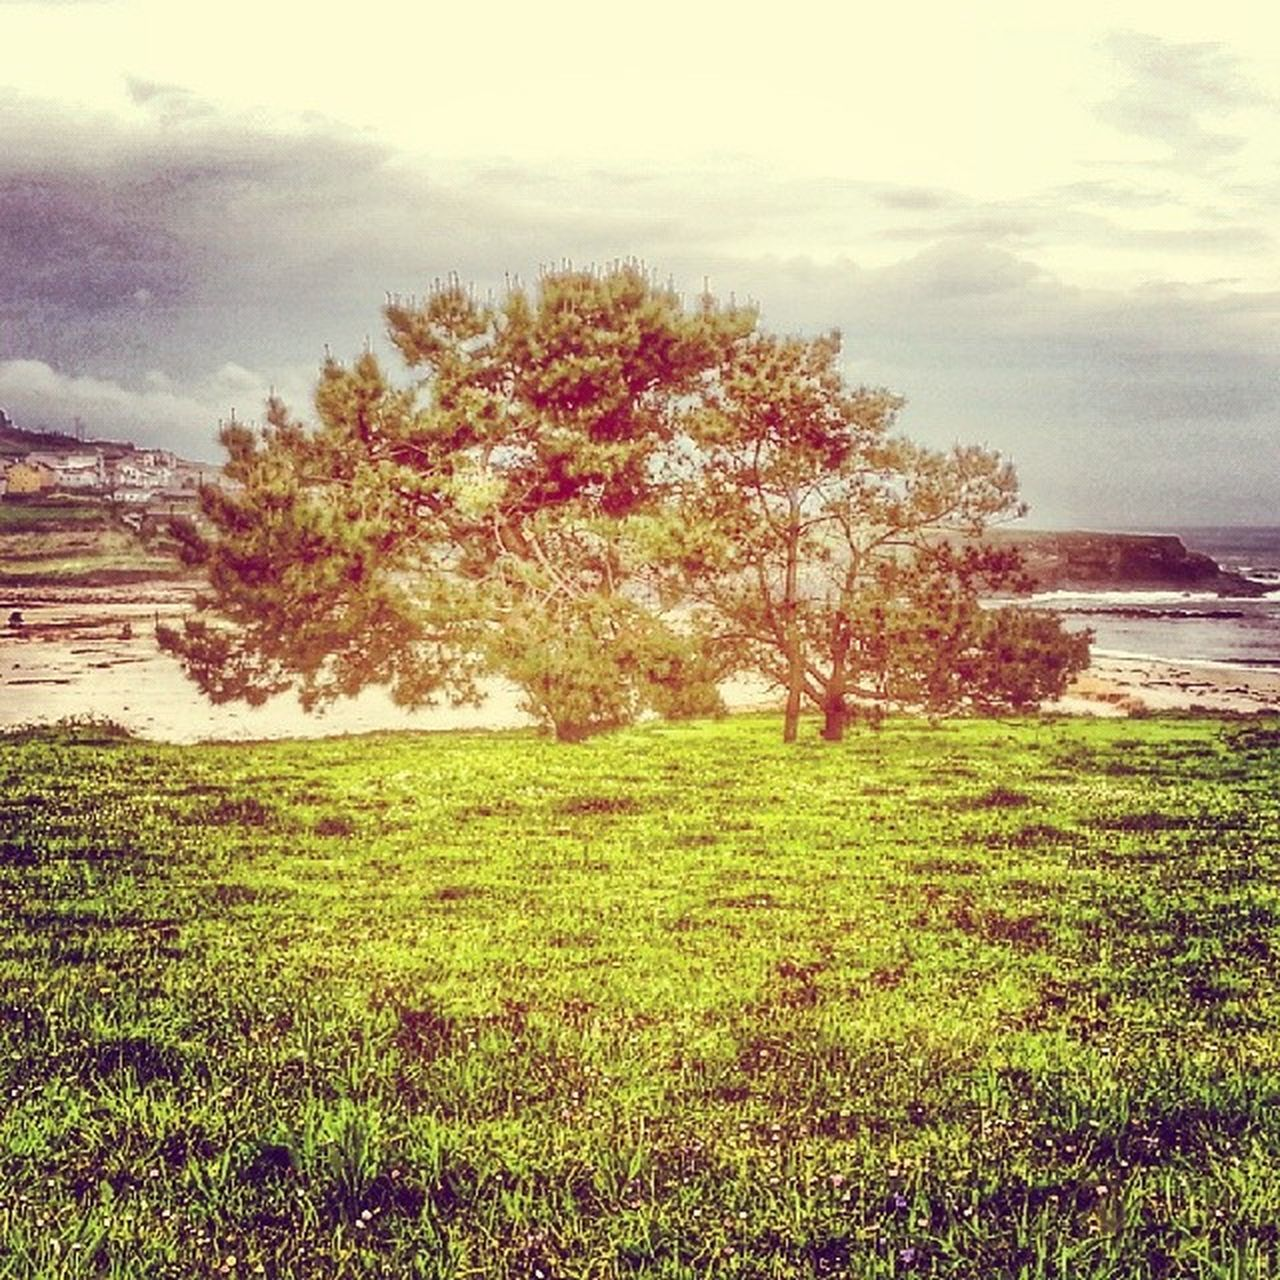 tree, nature, beauty in nature, grass, growth, sky, no people, outdoors, tranquility, cloud - sky, scenics, tranquil scene, day, field, flower, landscape, water